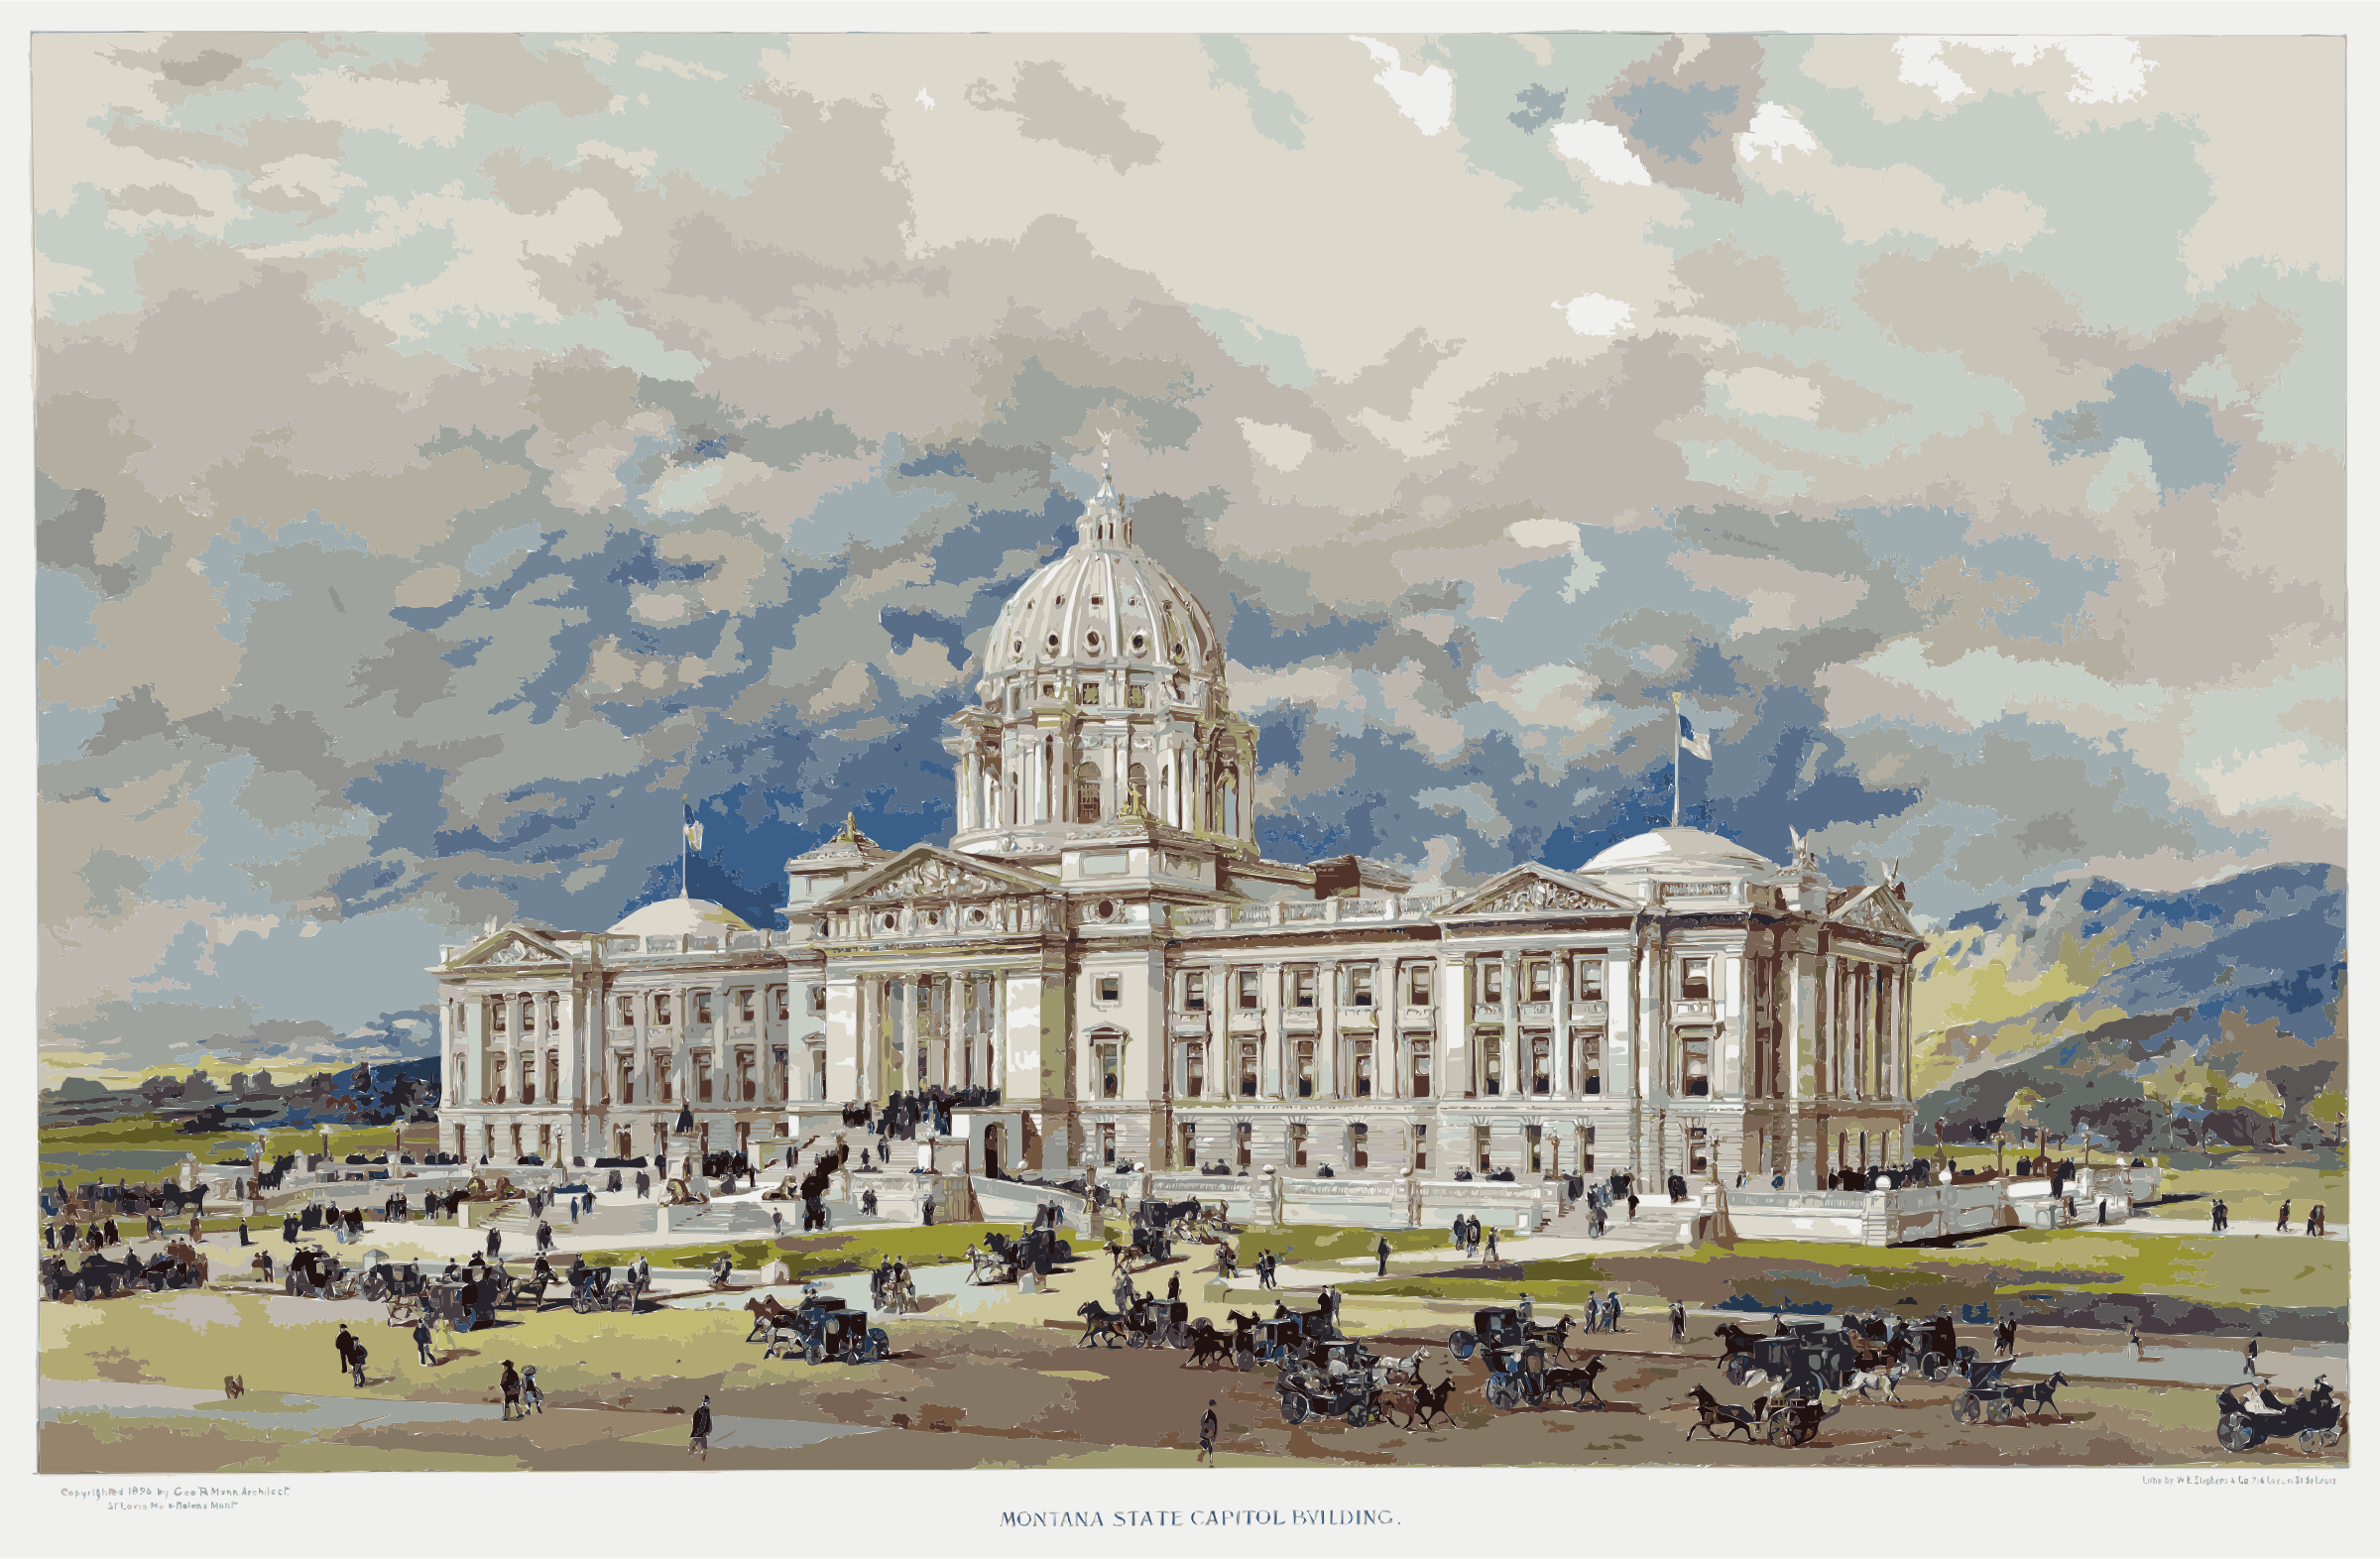 Montana state capitol 2 by 3we2nn+8w9uc0fun68aw